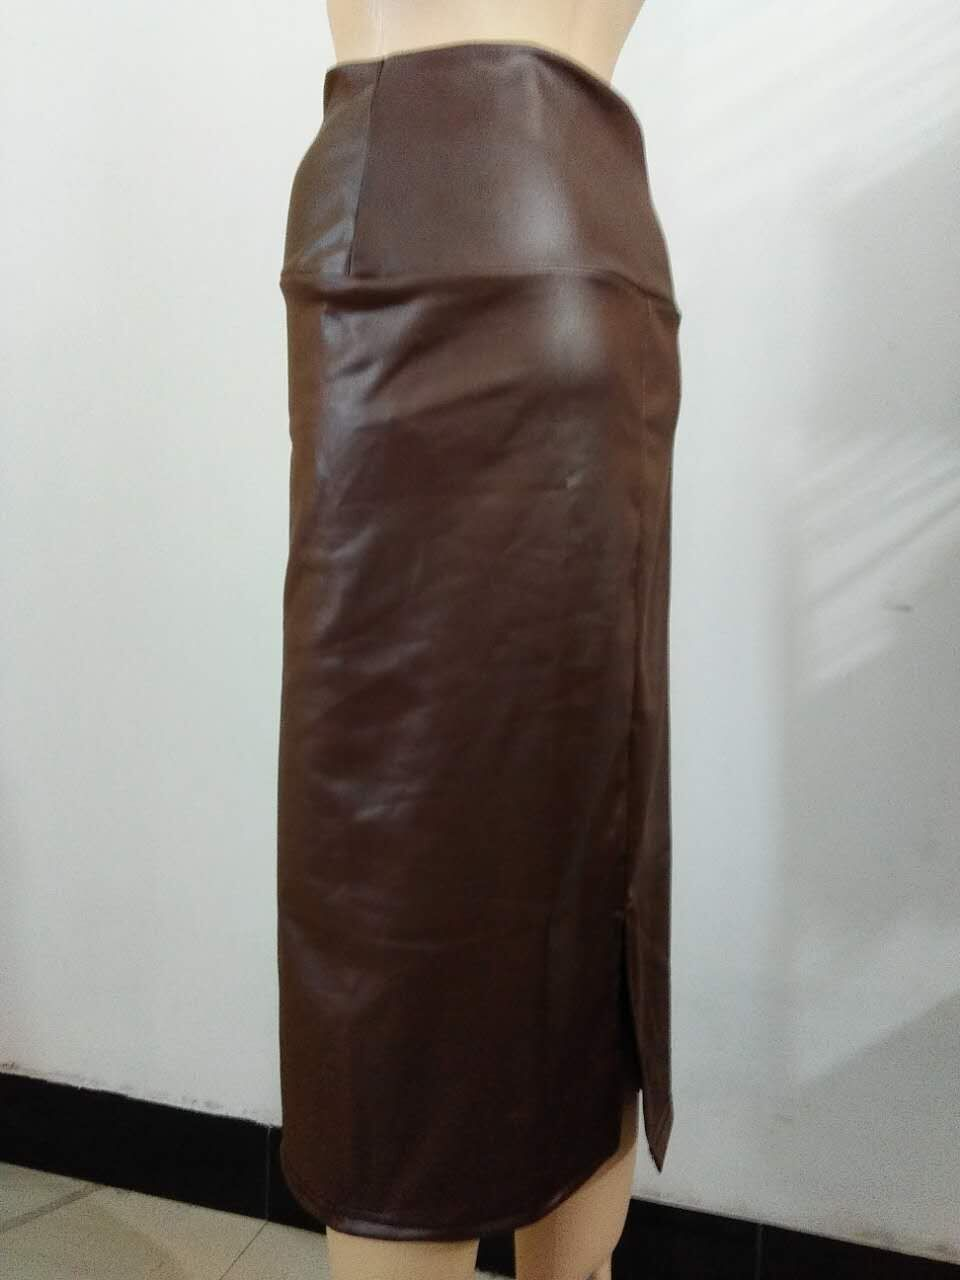 e8688042818 Bohocotol 2018 summer women plus size high waist faux leather pencil skirt  black leather skirt S M L XXXL free shipping-in Skirts from Women s  Clothing on ...